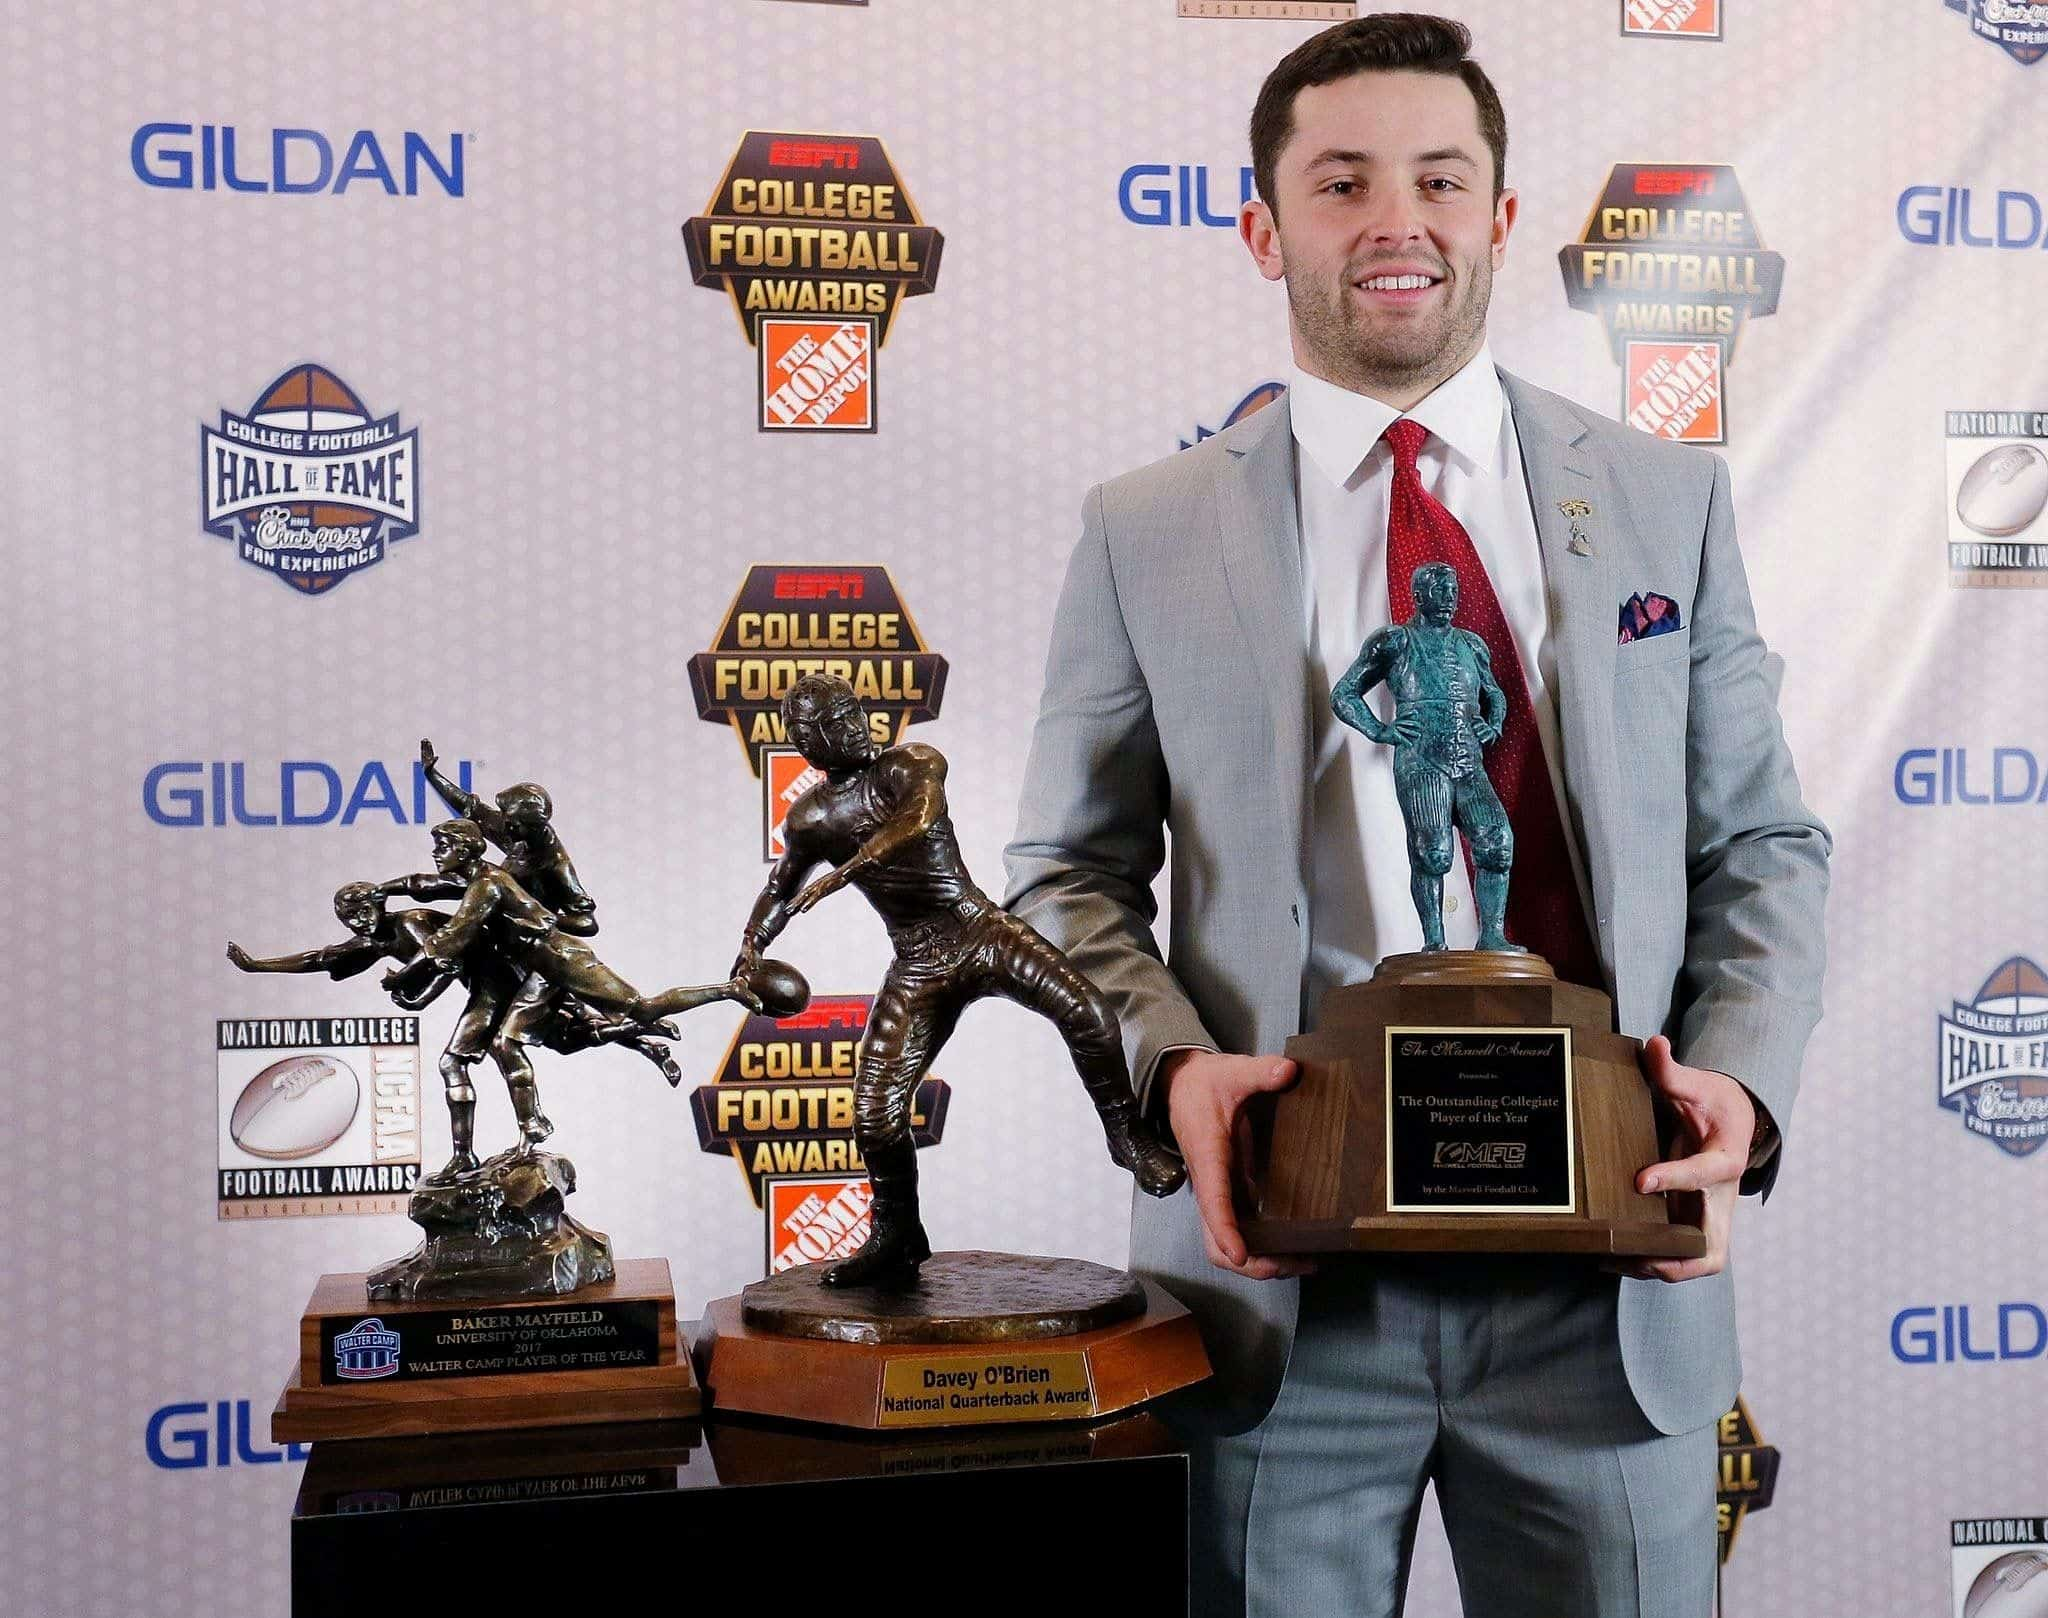 Baker Mayfield with his precious award